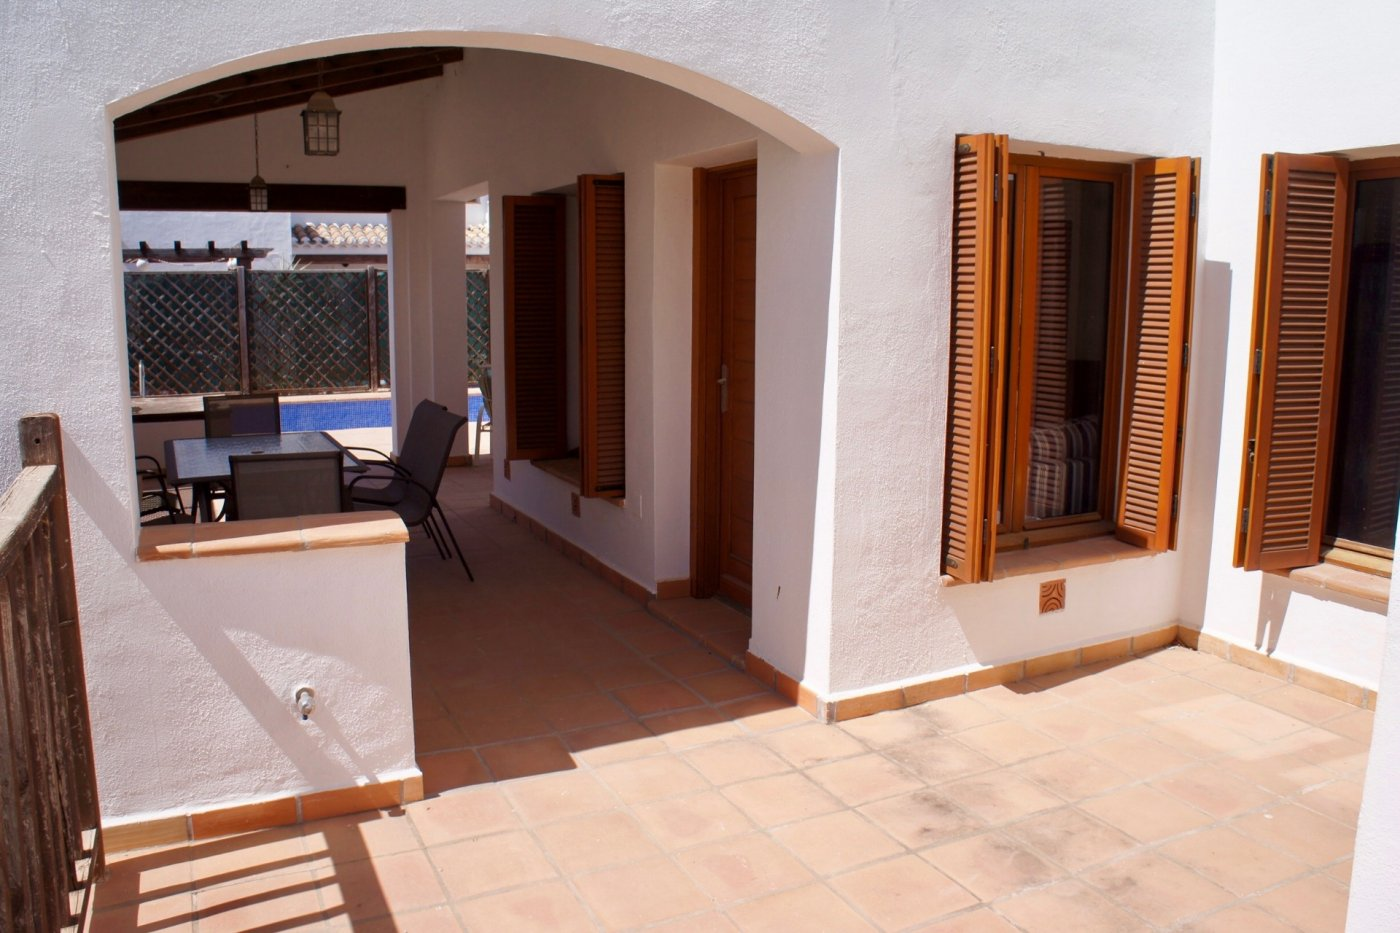 Gallery Image 13 of South West Facing 3 Bed Villa with Private Pool on El Valle Golf resort